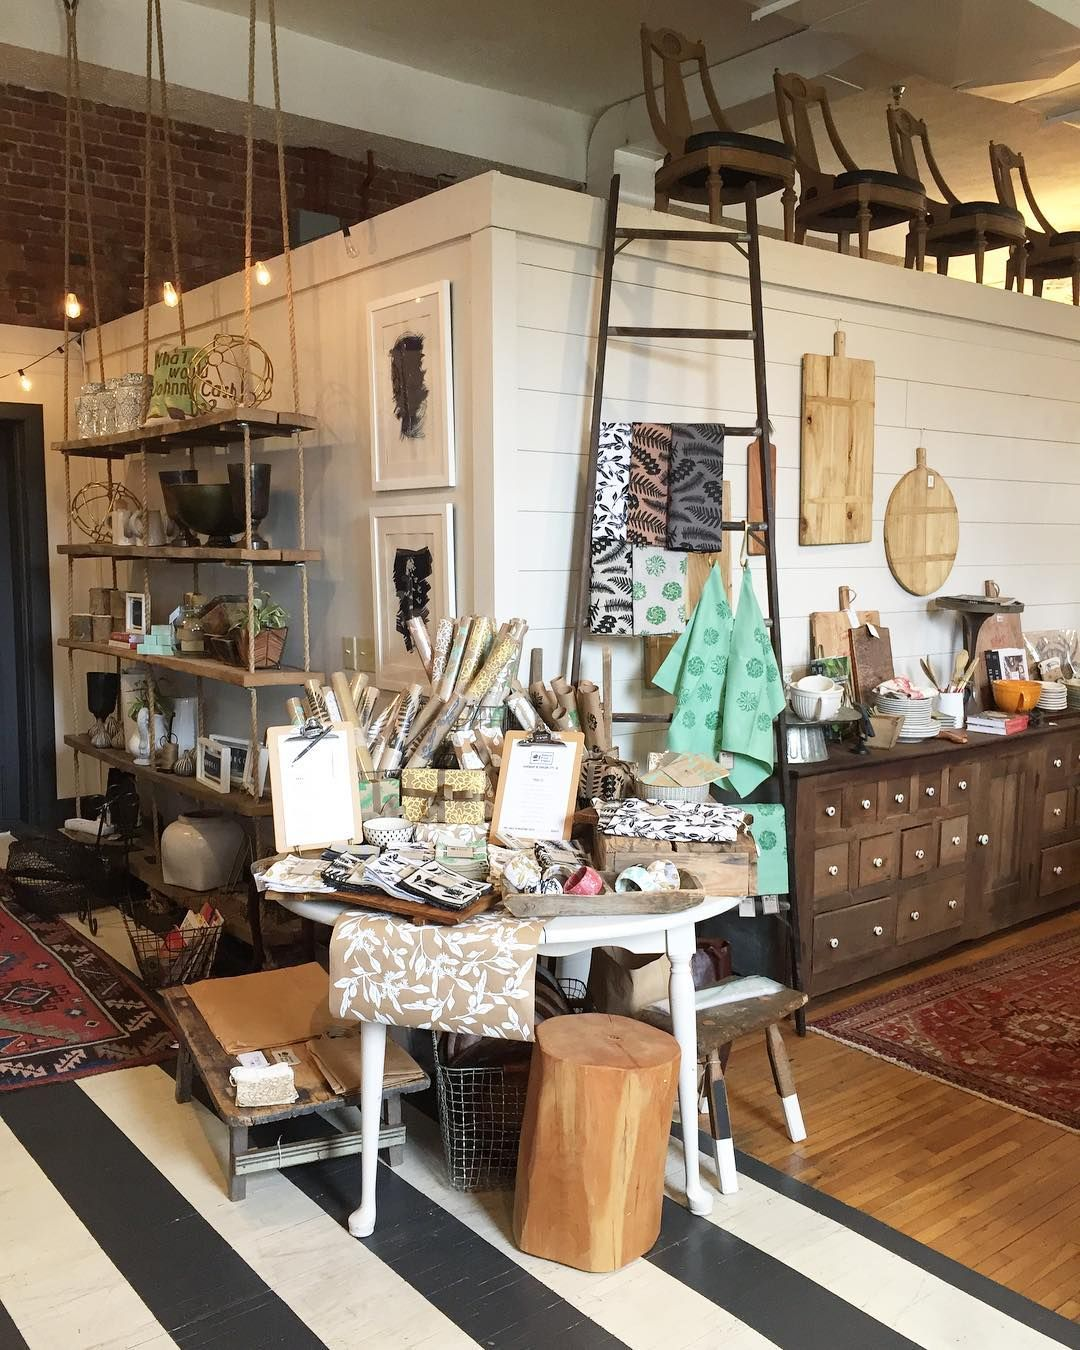 Our Bks Set Up At Reclaimed Inspired Goods In Johnson City Tn For